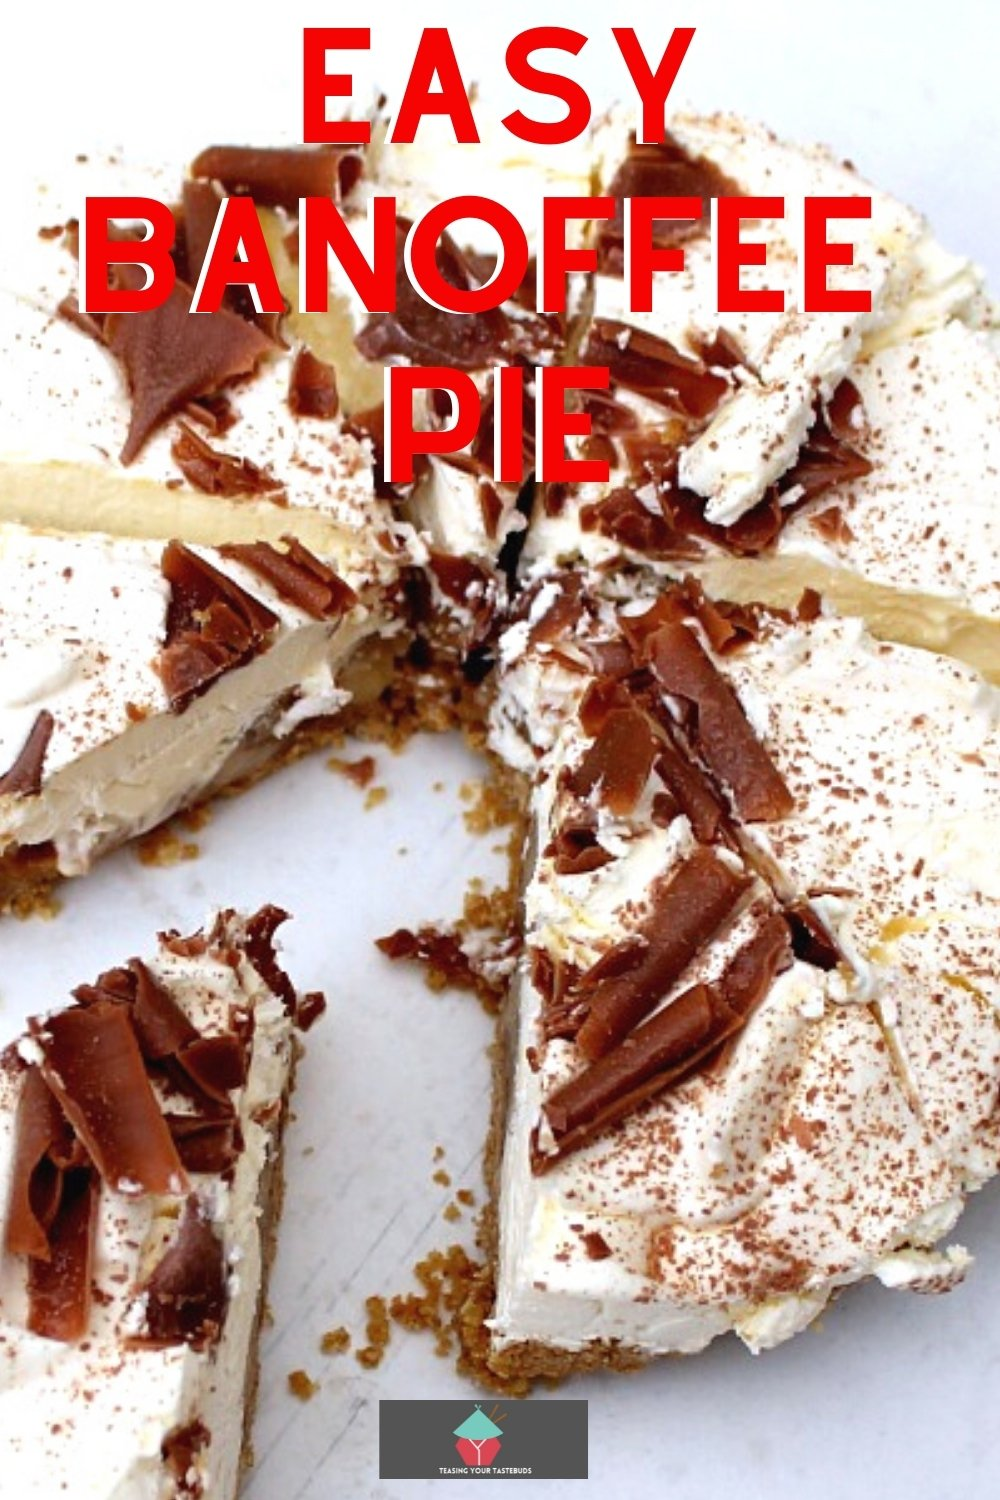 Easy Banoffee Pie. This is a wonderful creamy no bake dessert with layers of banana and caramel. Very easy to make and always popular.